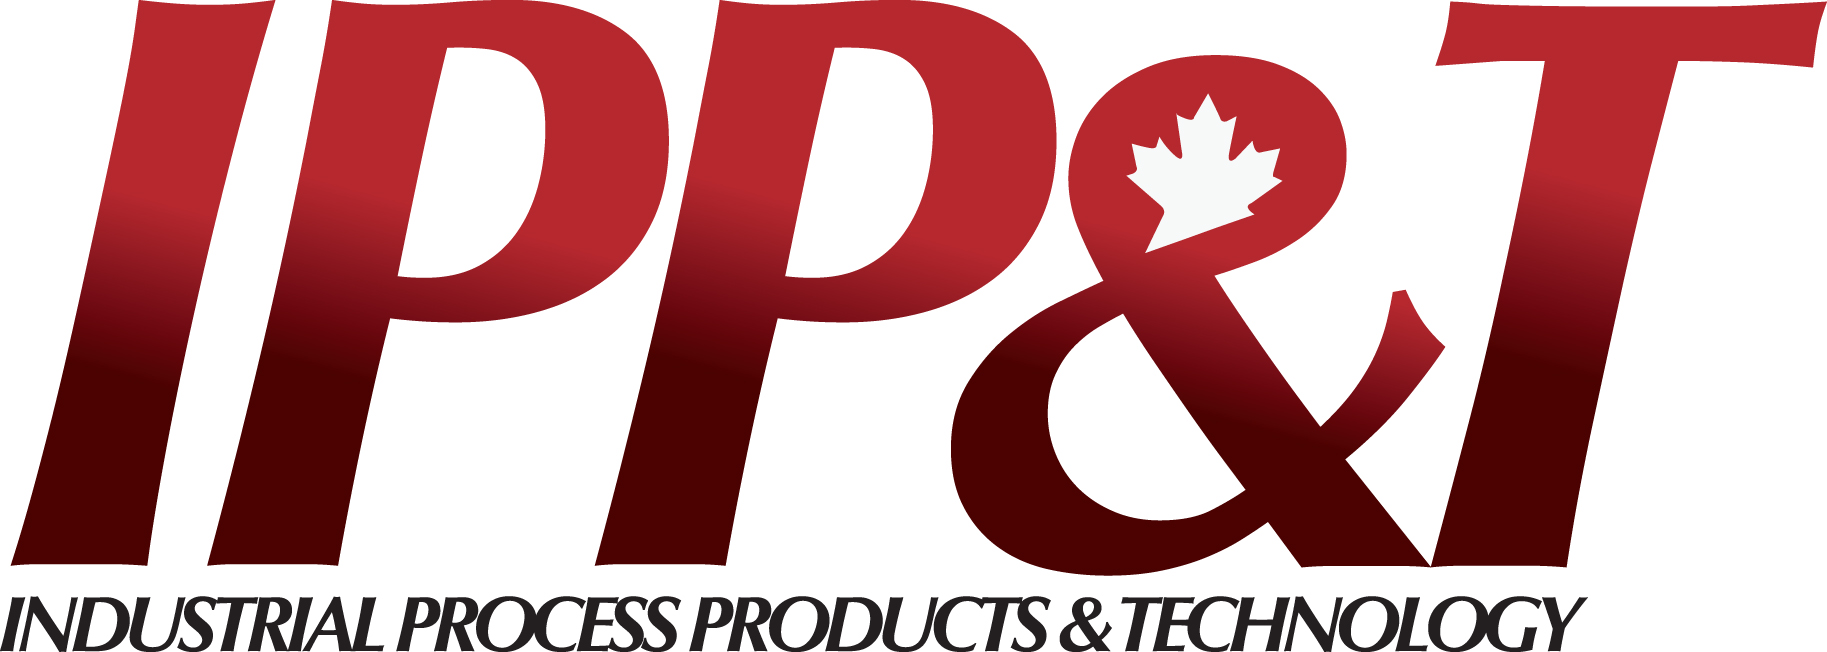 Industrial Processes, Products, and Technology logo.